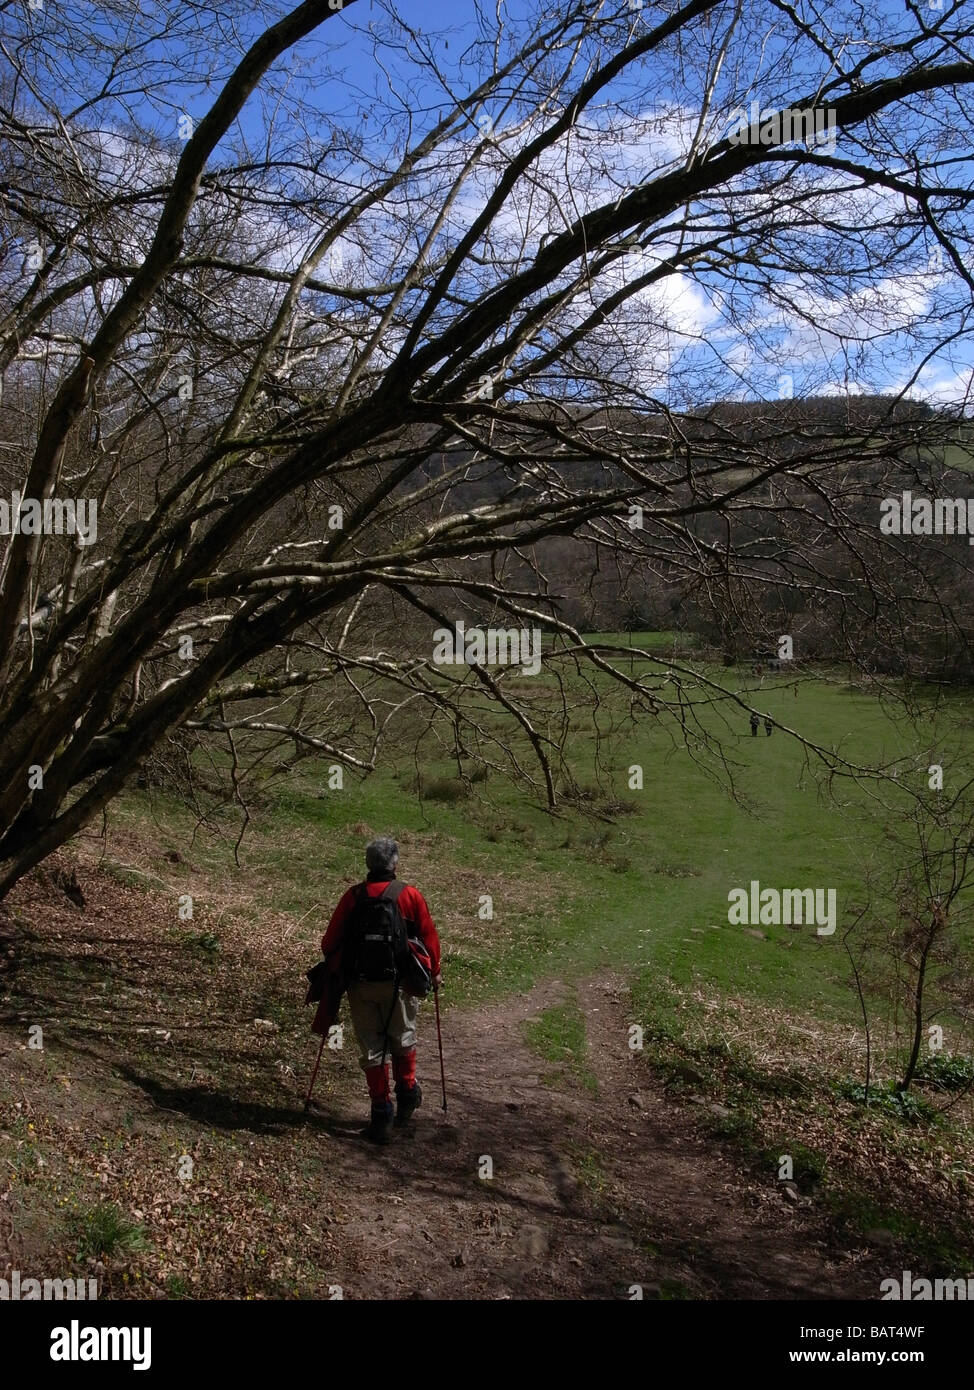 Walker in a Red anorak on the South Wales three peaks challenge walk - Stock Image